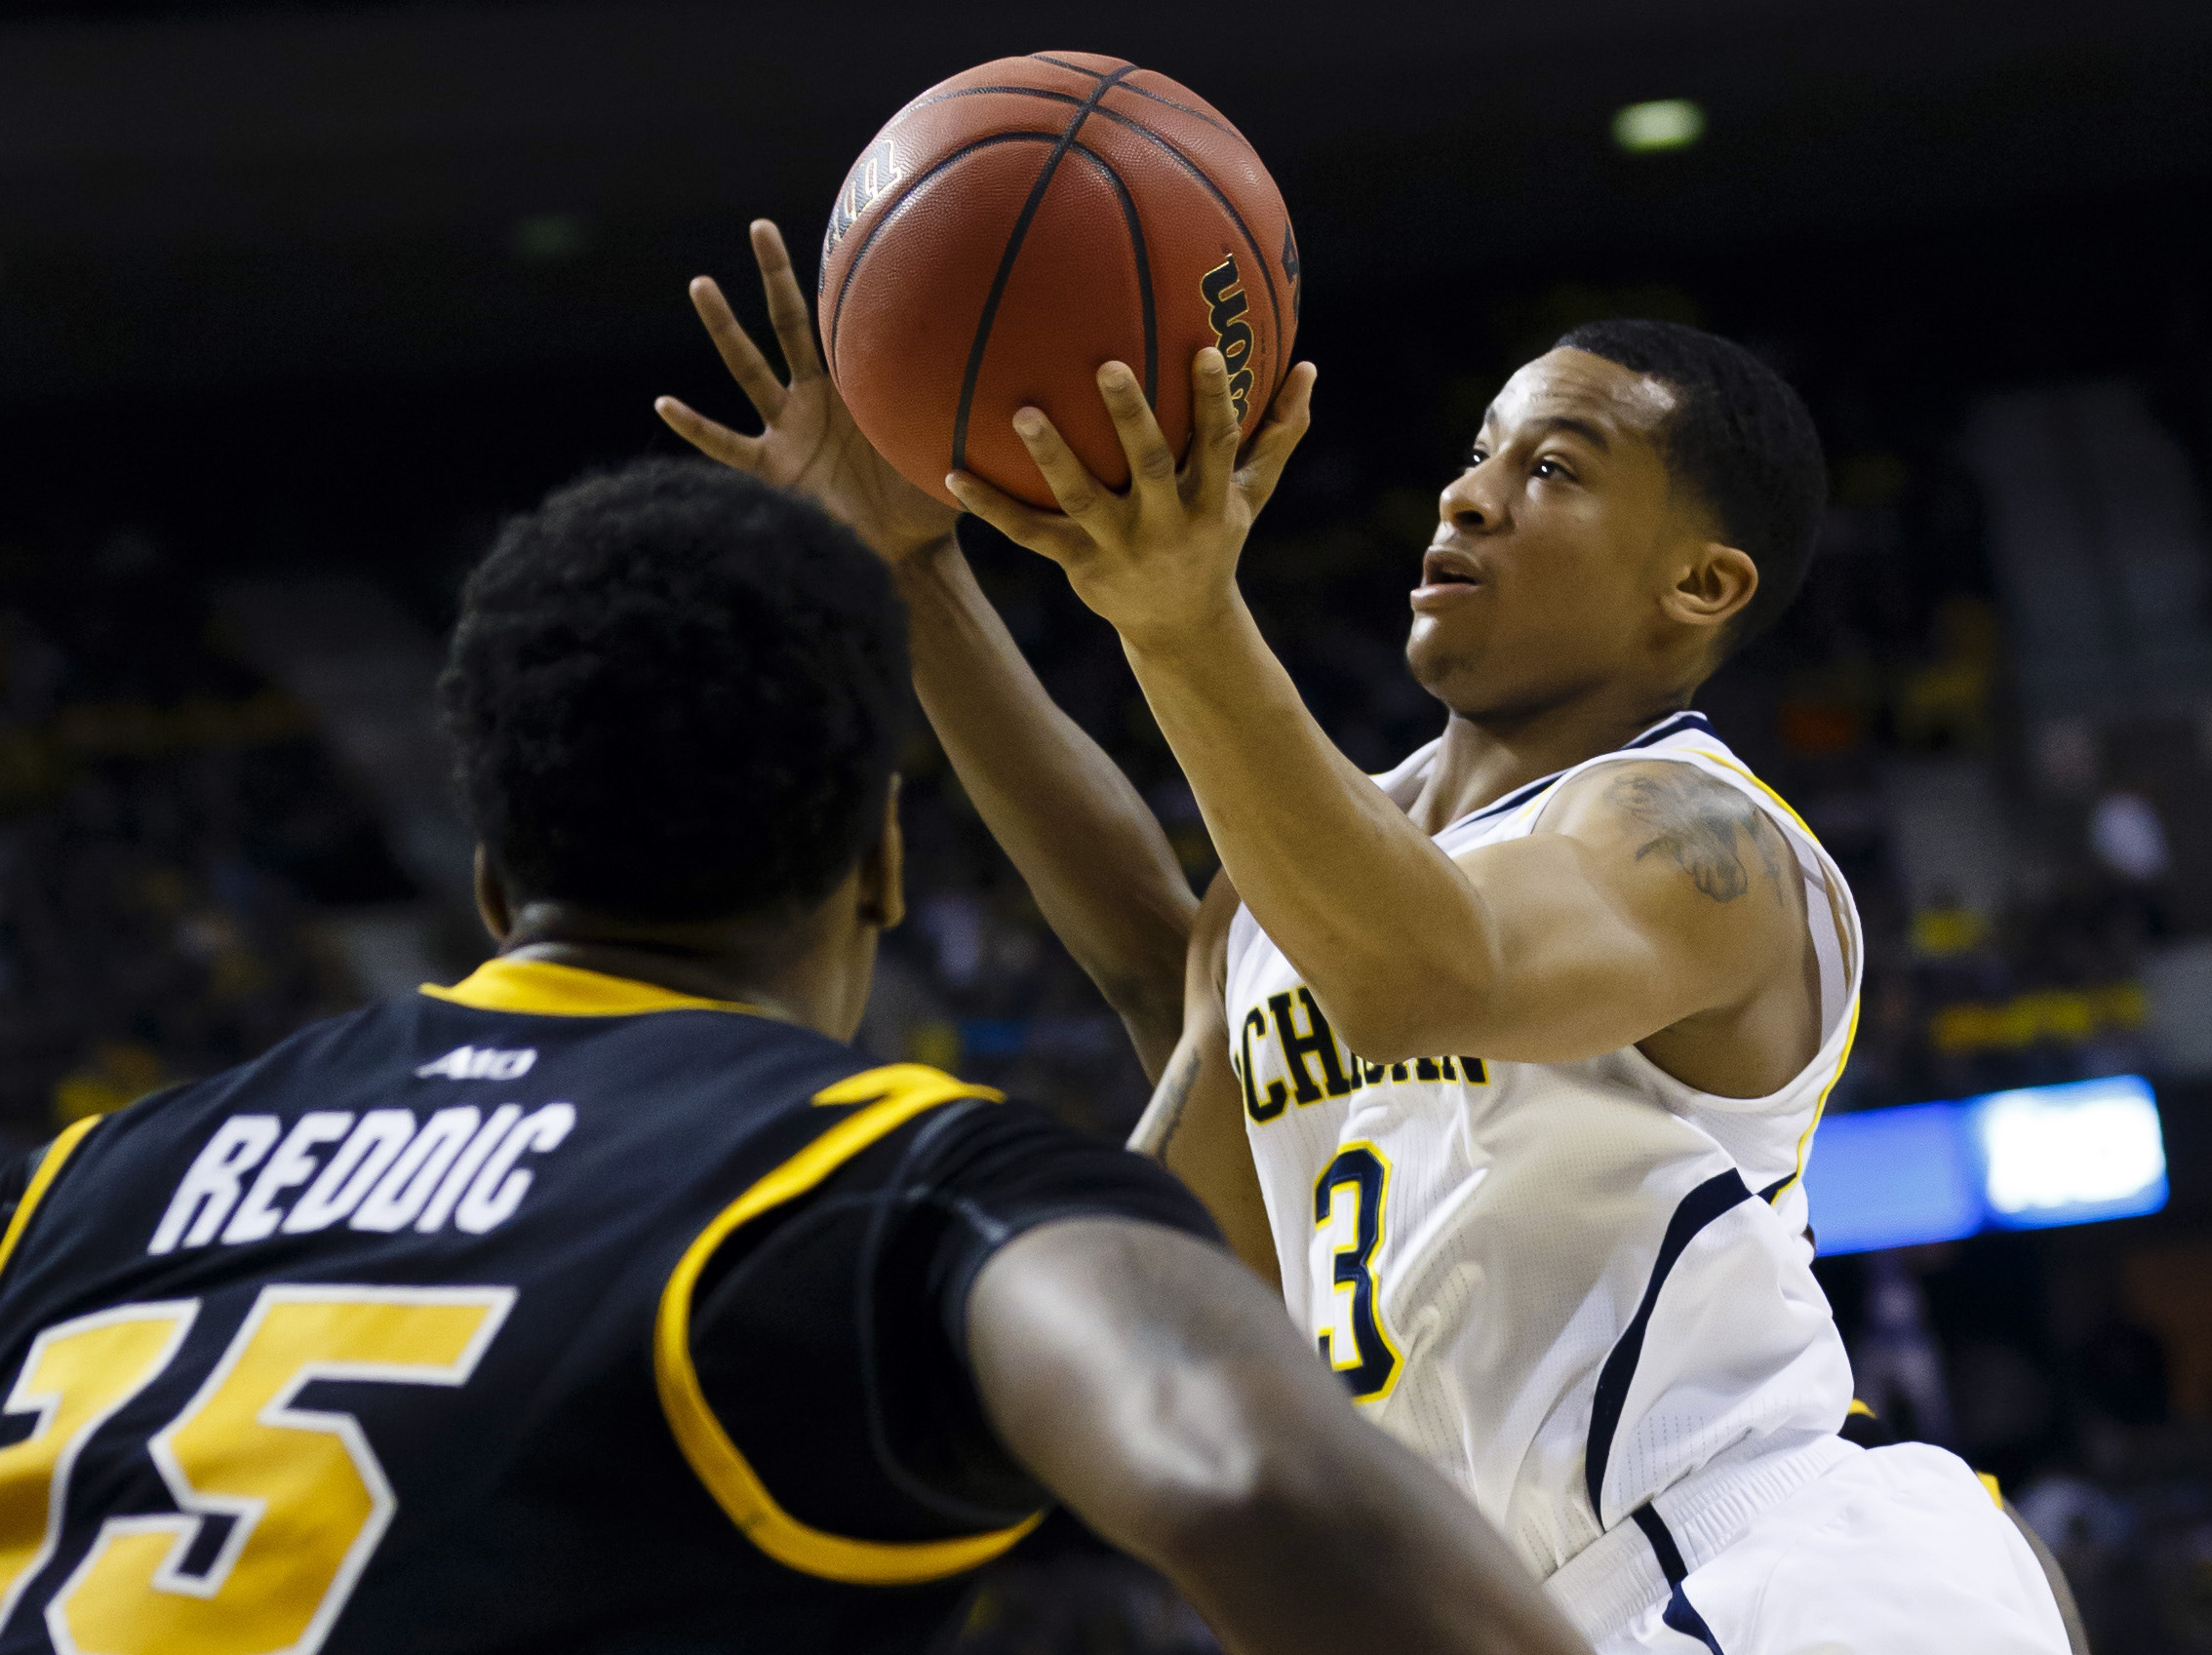 Trey Burke looks to do what the Fab Five couldn't -- win a national championship. (USA Today Sports)